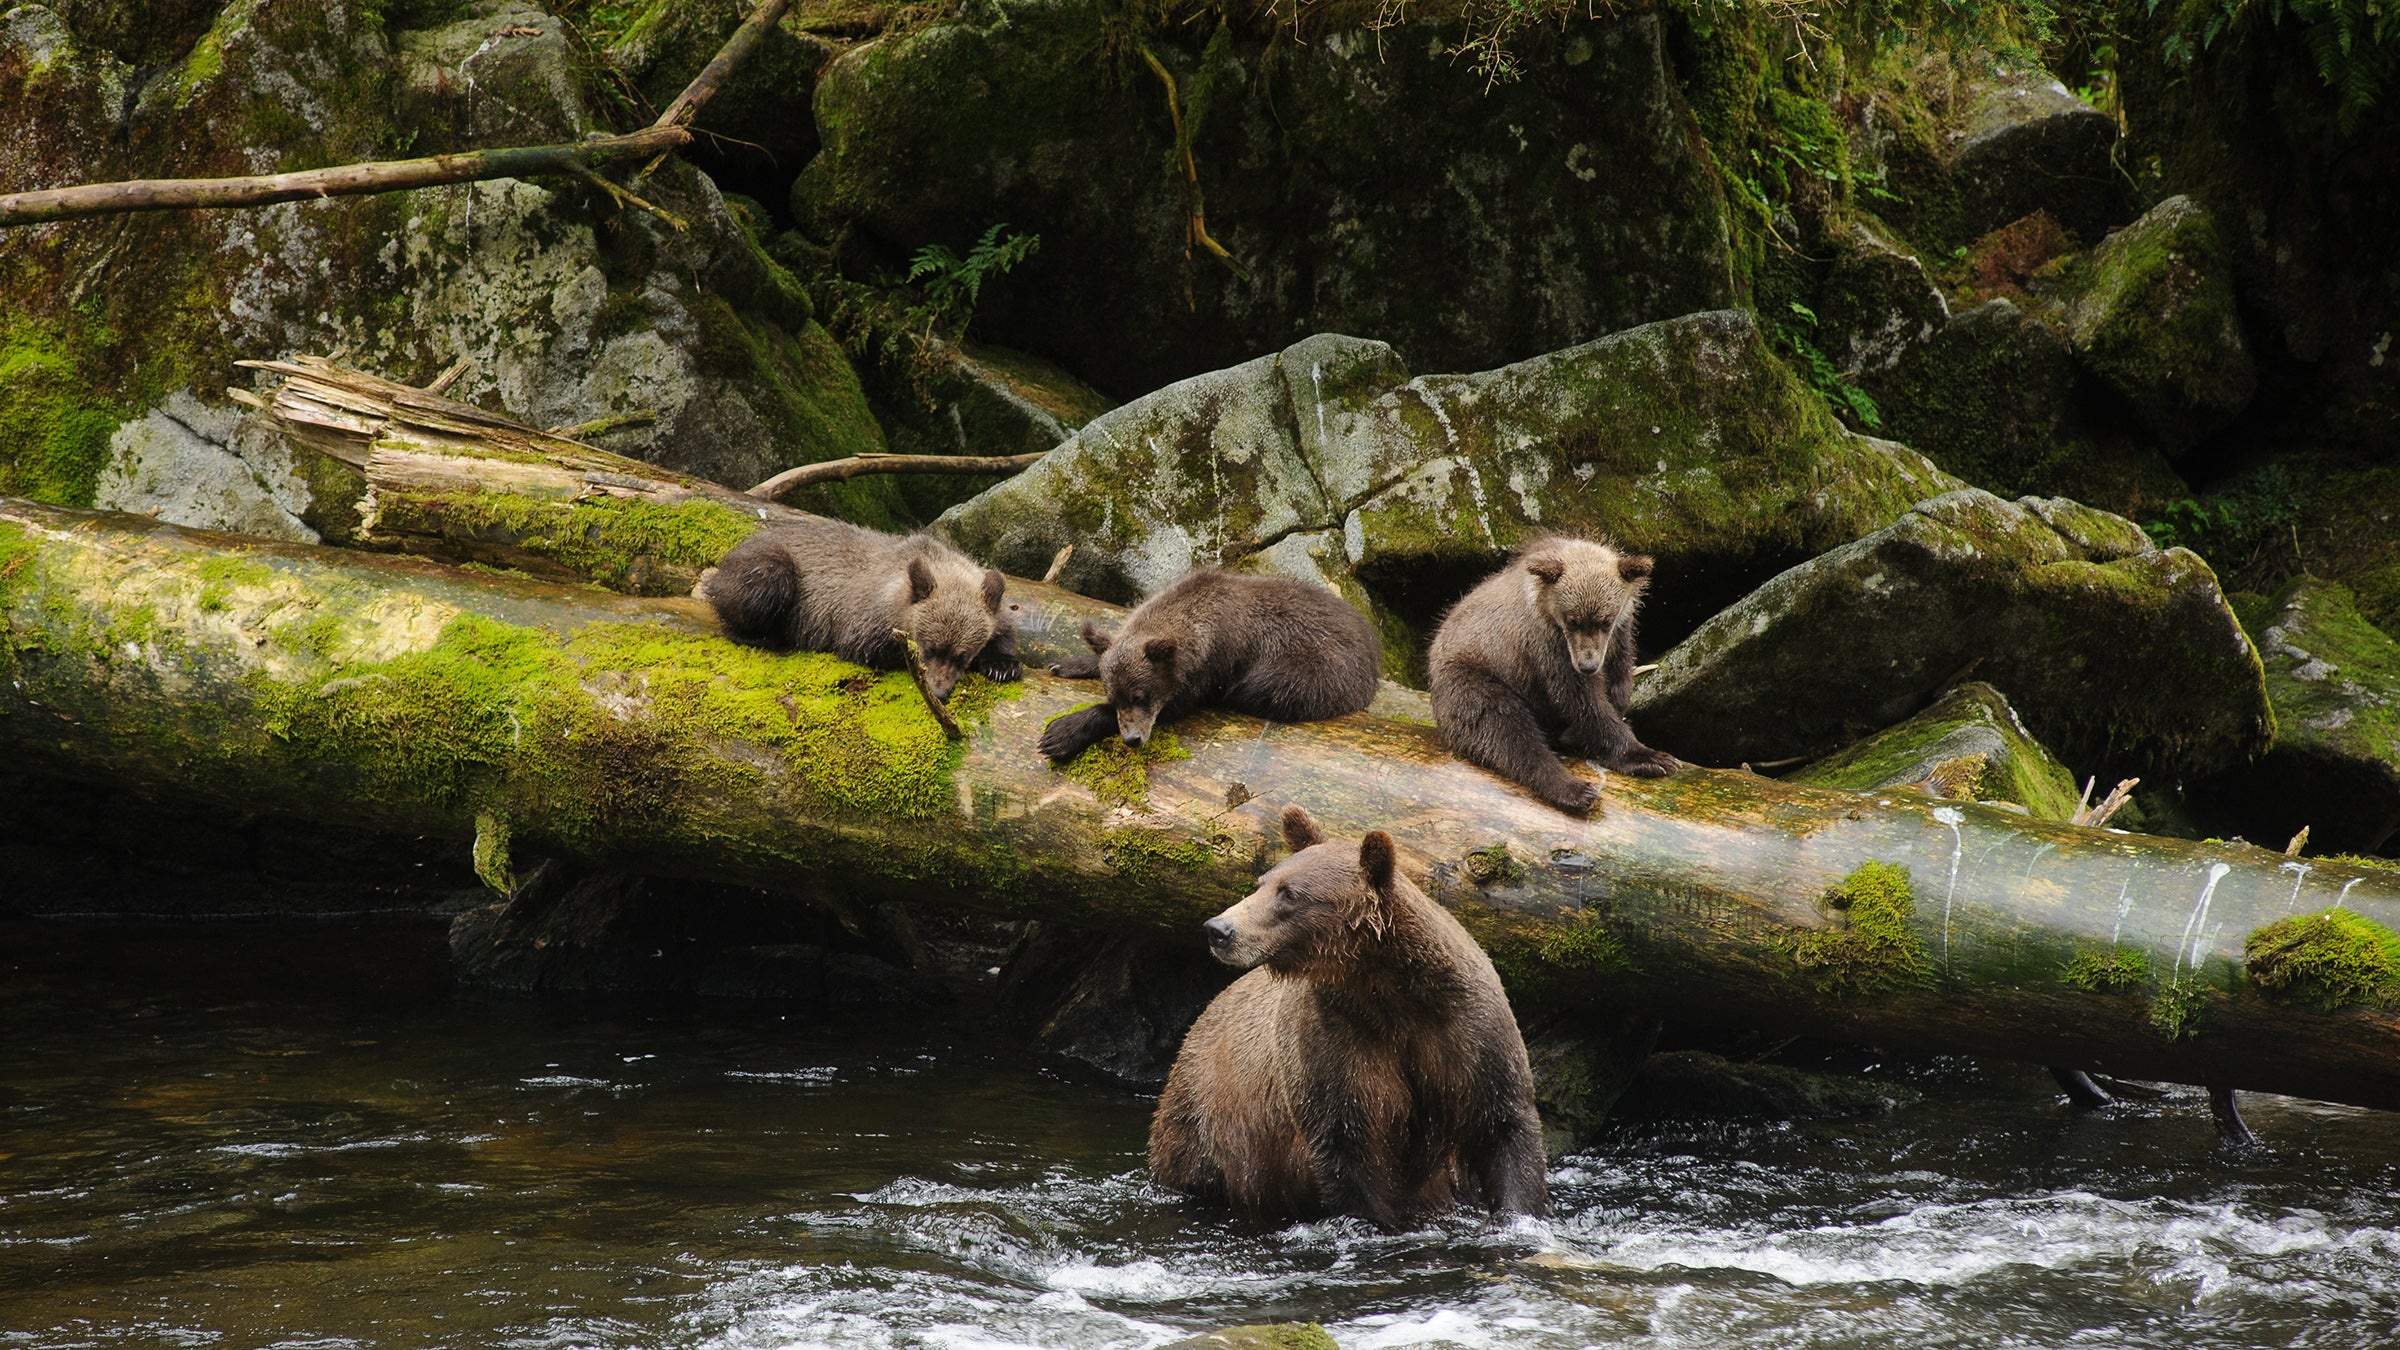 tongass_h bears in water